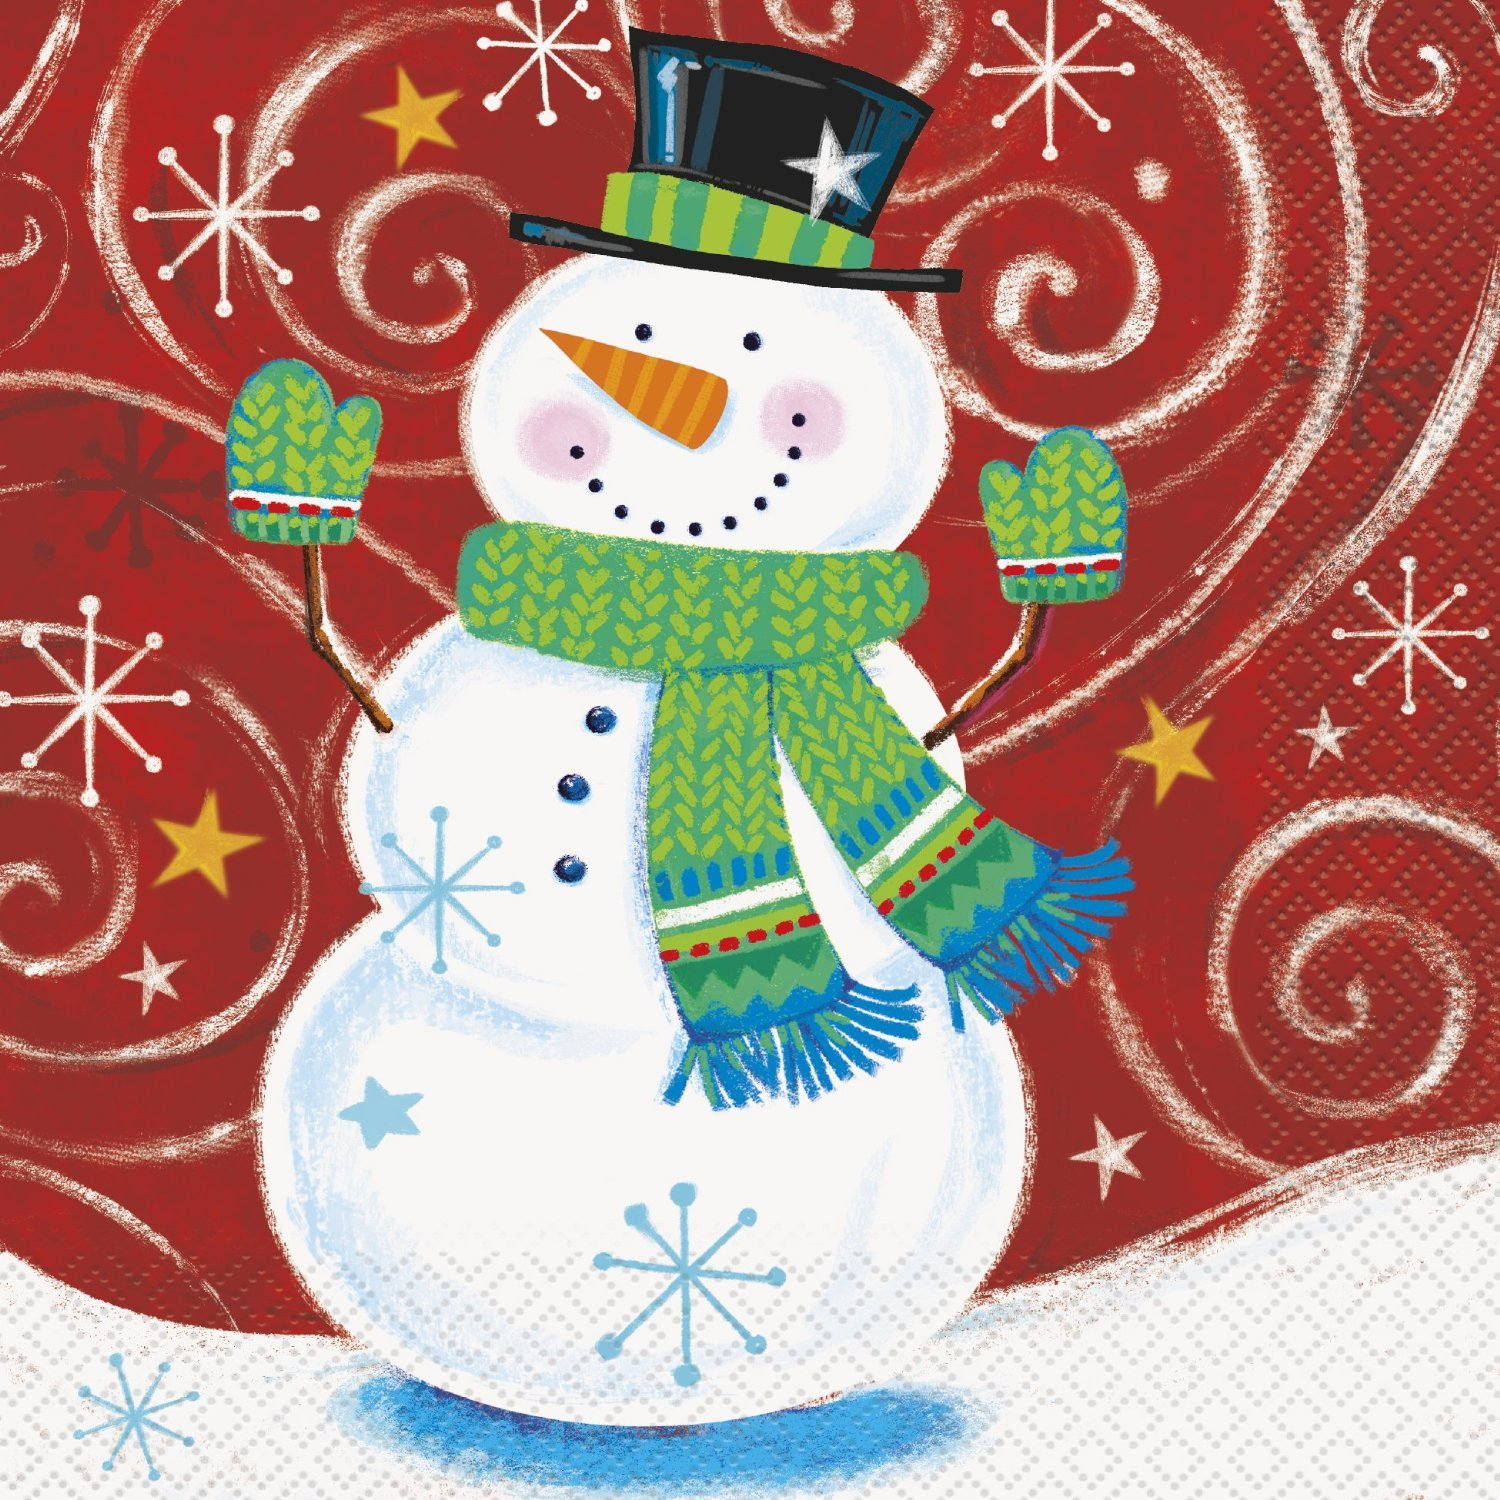 LOLITA BRAND SNOWMAN FROSTY/'S PARTY WINTER MARTINI COCKTAIL NAPKINS 50CT